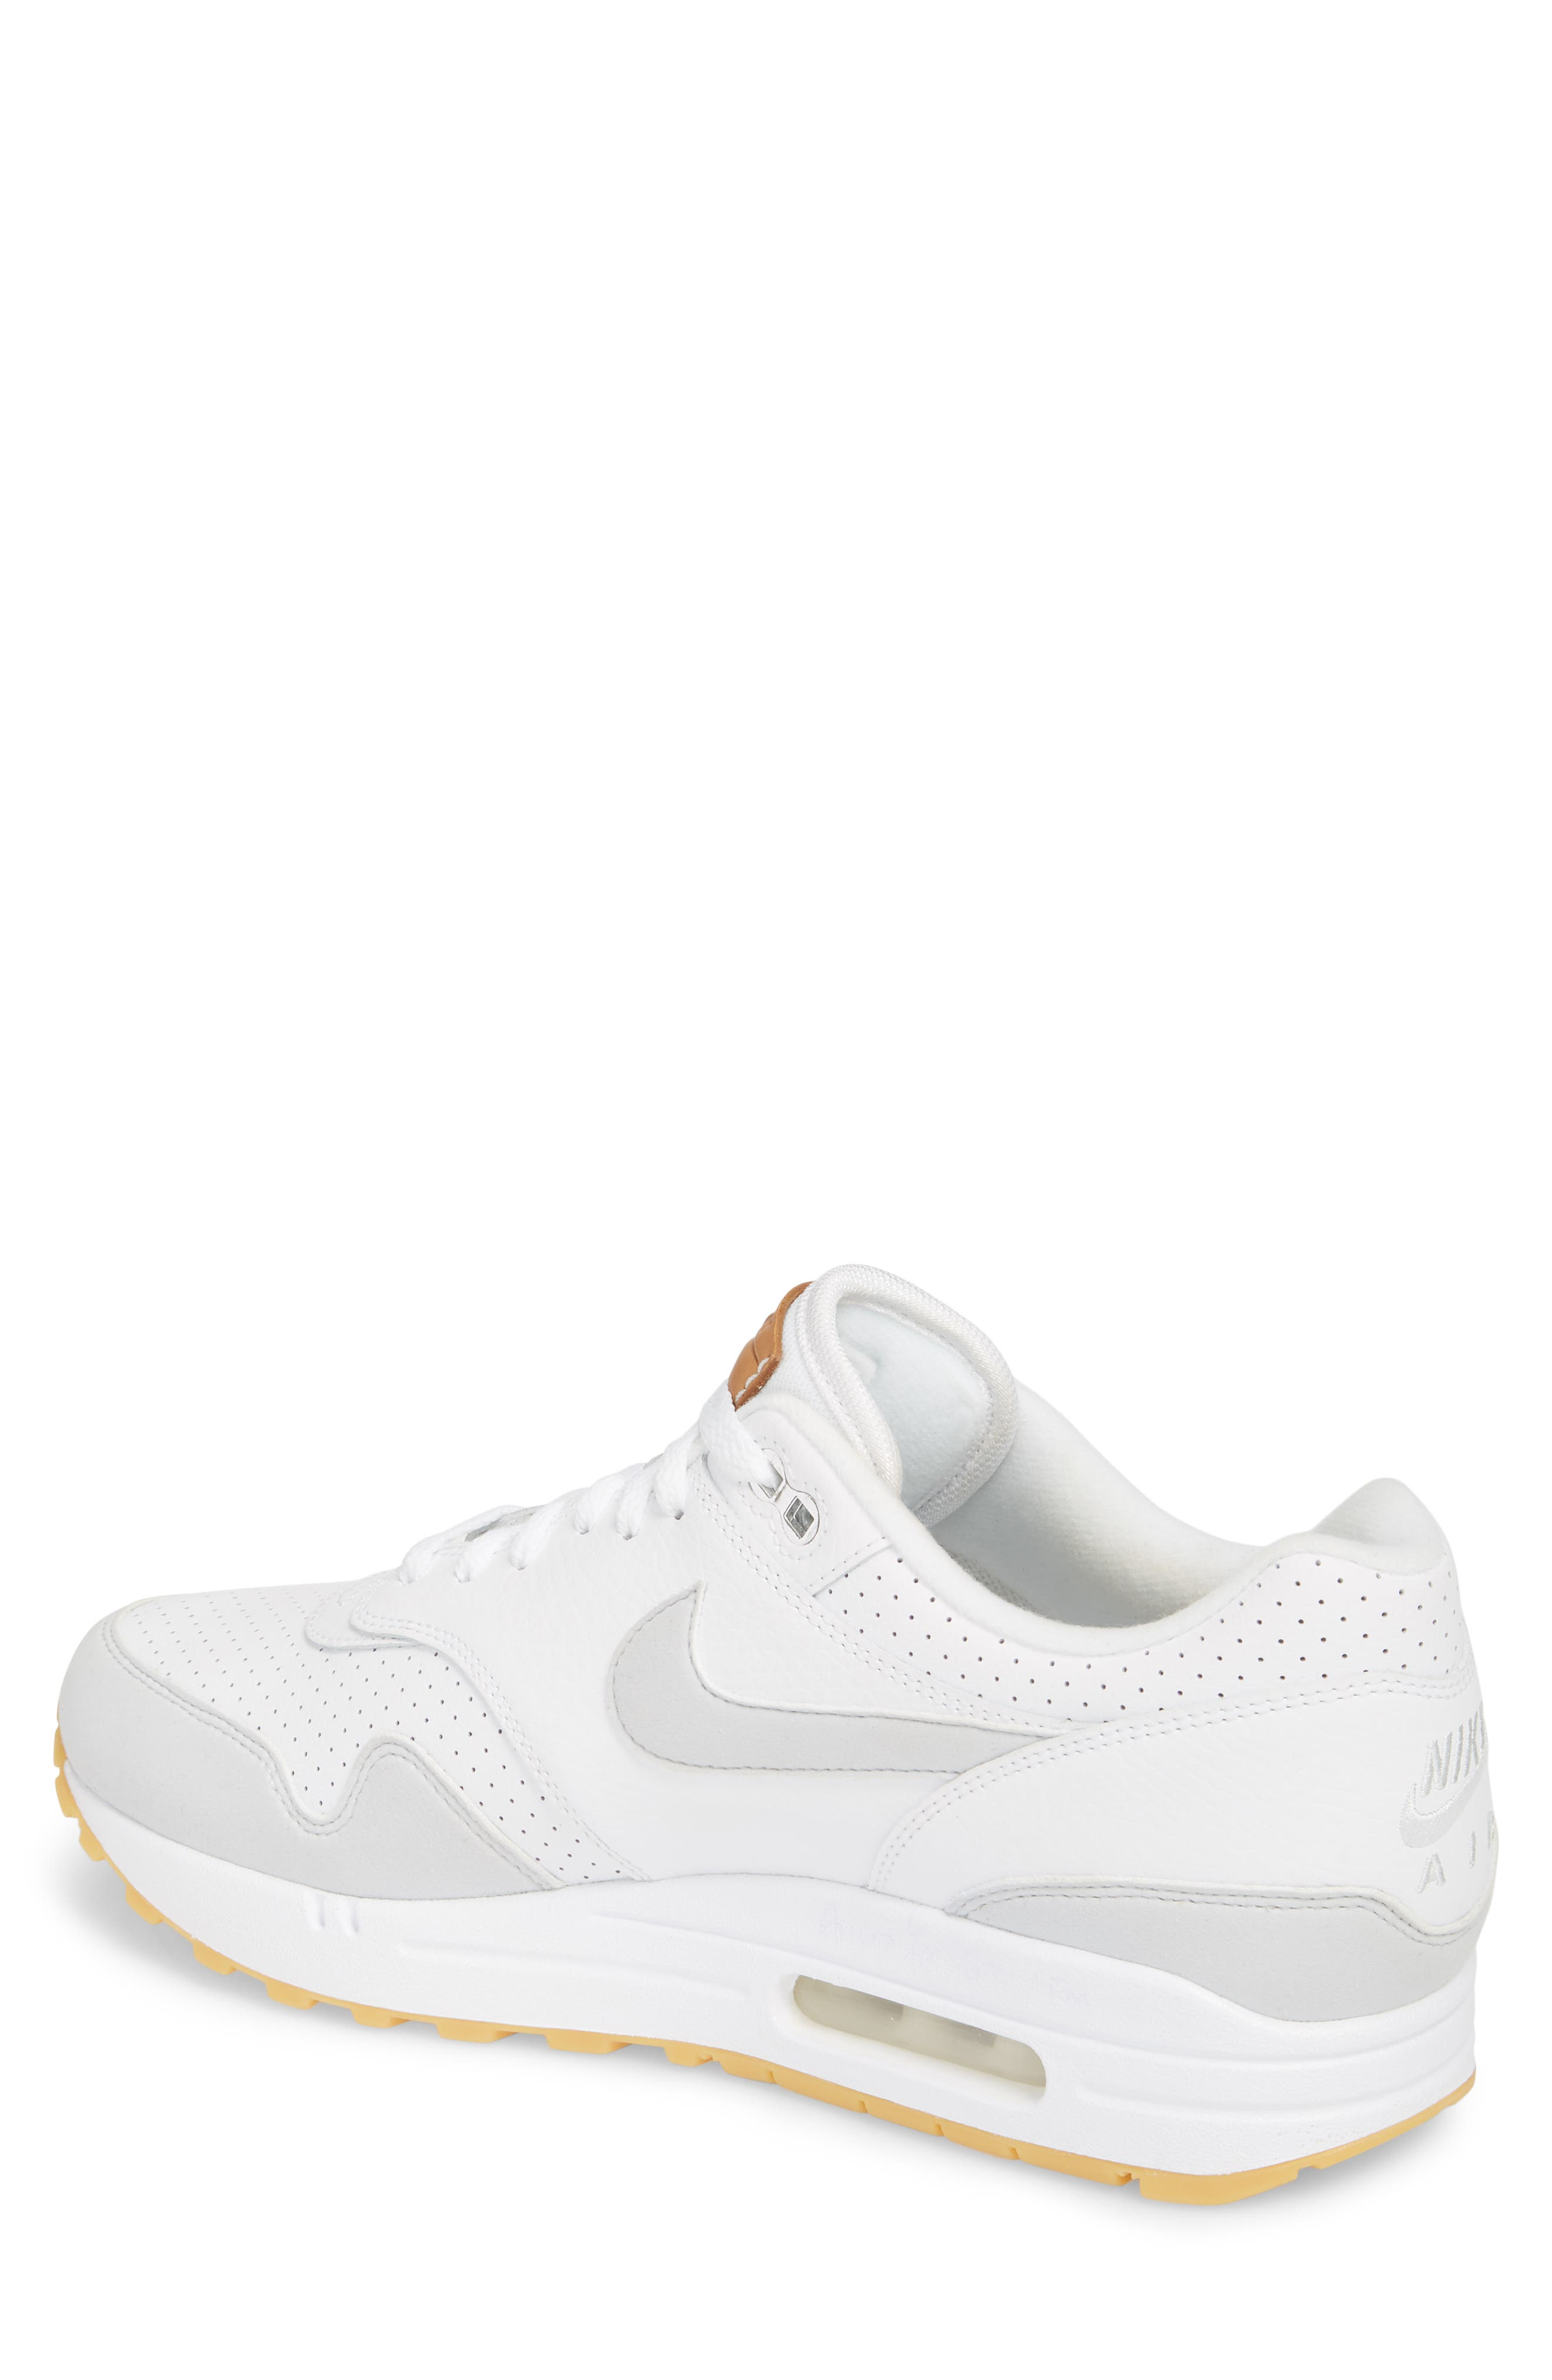 Air Max 1 Sneaker,                             Alternate thumbnail 2, color,                             WHITE/ PURE PLATINUM/ YELLOW